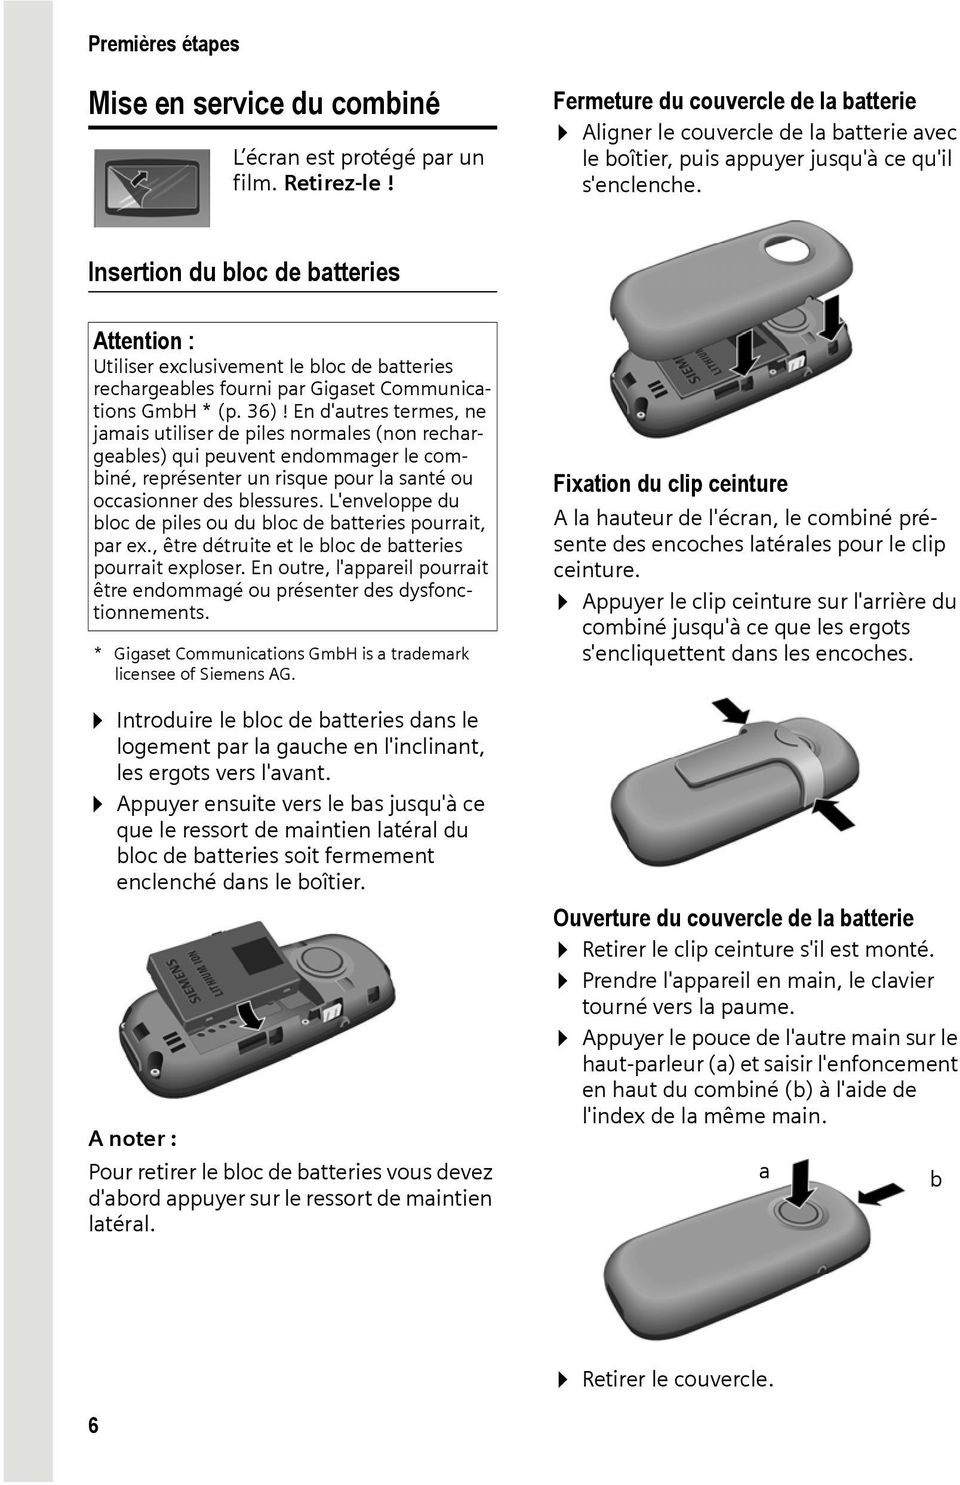 Insertion du bloc de batteries Attention : Utiliser exclusivement le bloc de batteries rechargeables fourni par Gigaset Communications GmbH * (p. 36)!